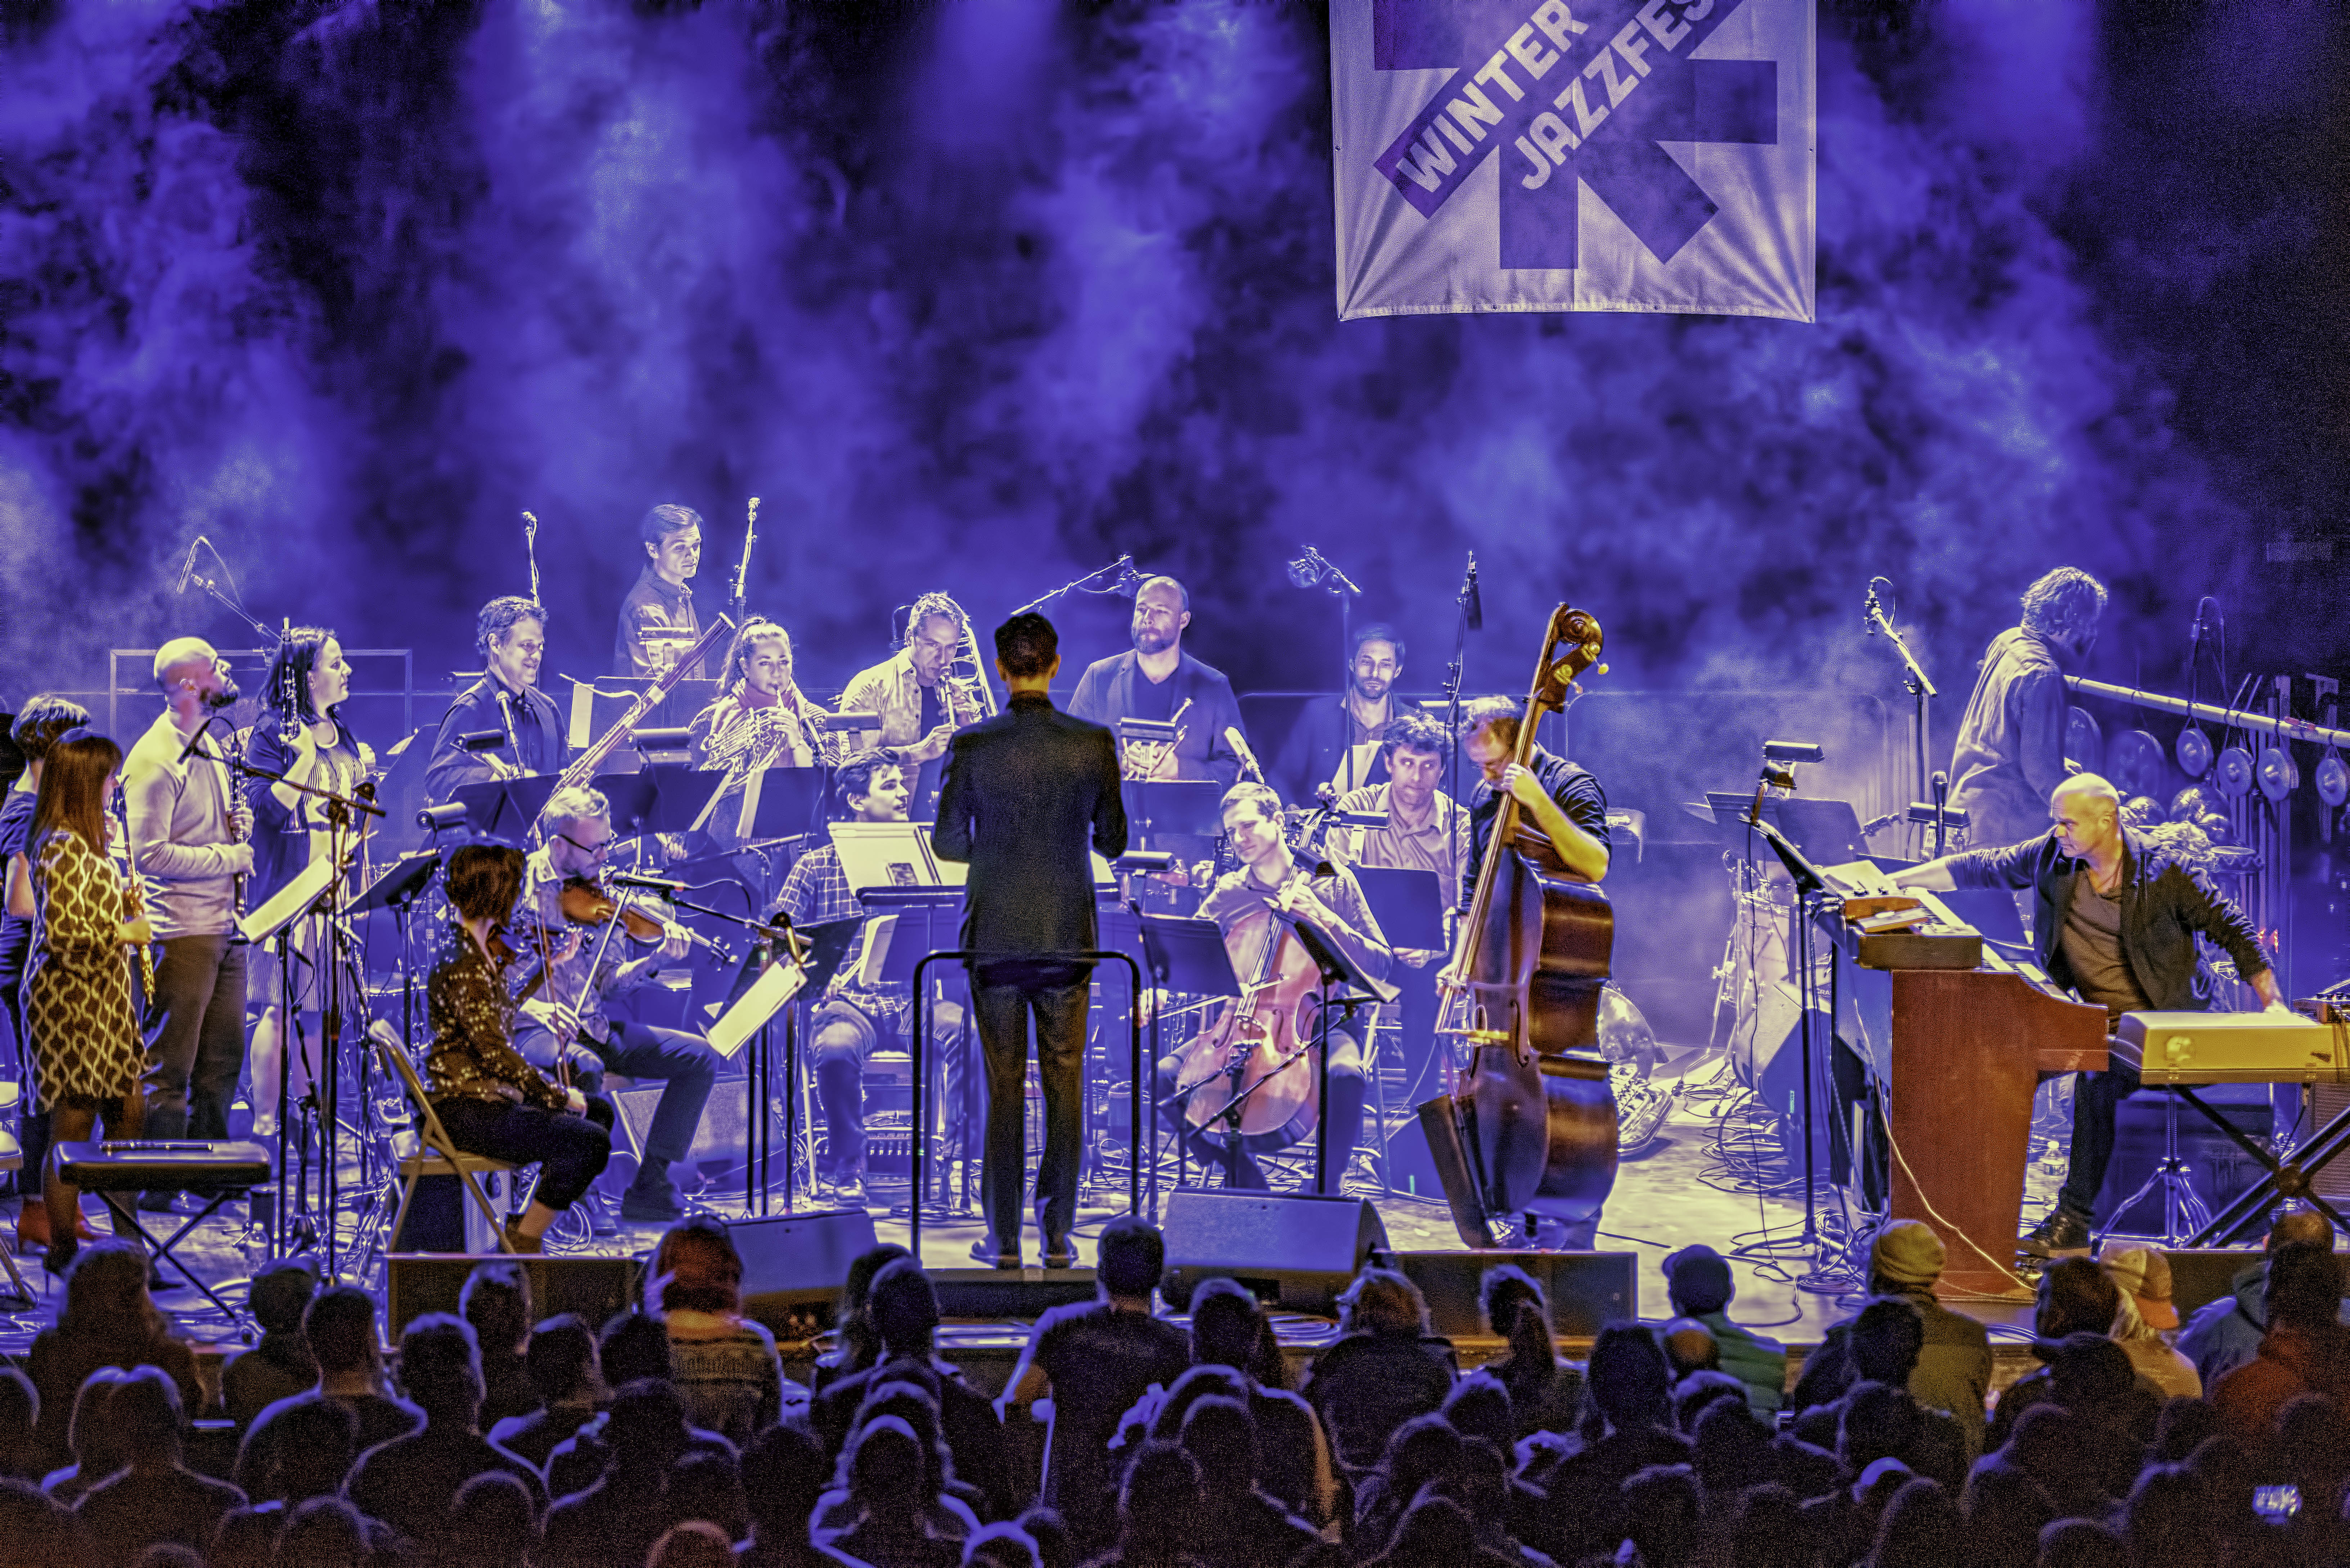 Alarm Will Sound and Medeski, Martin and Wood at the NYC Winter Jazzfest 2019